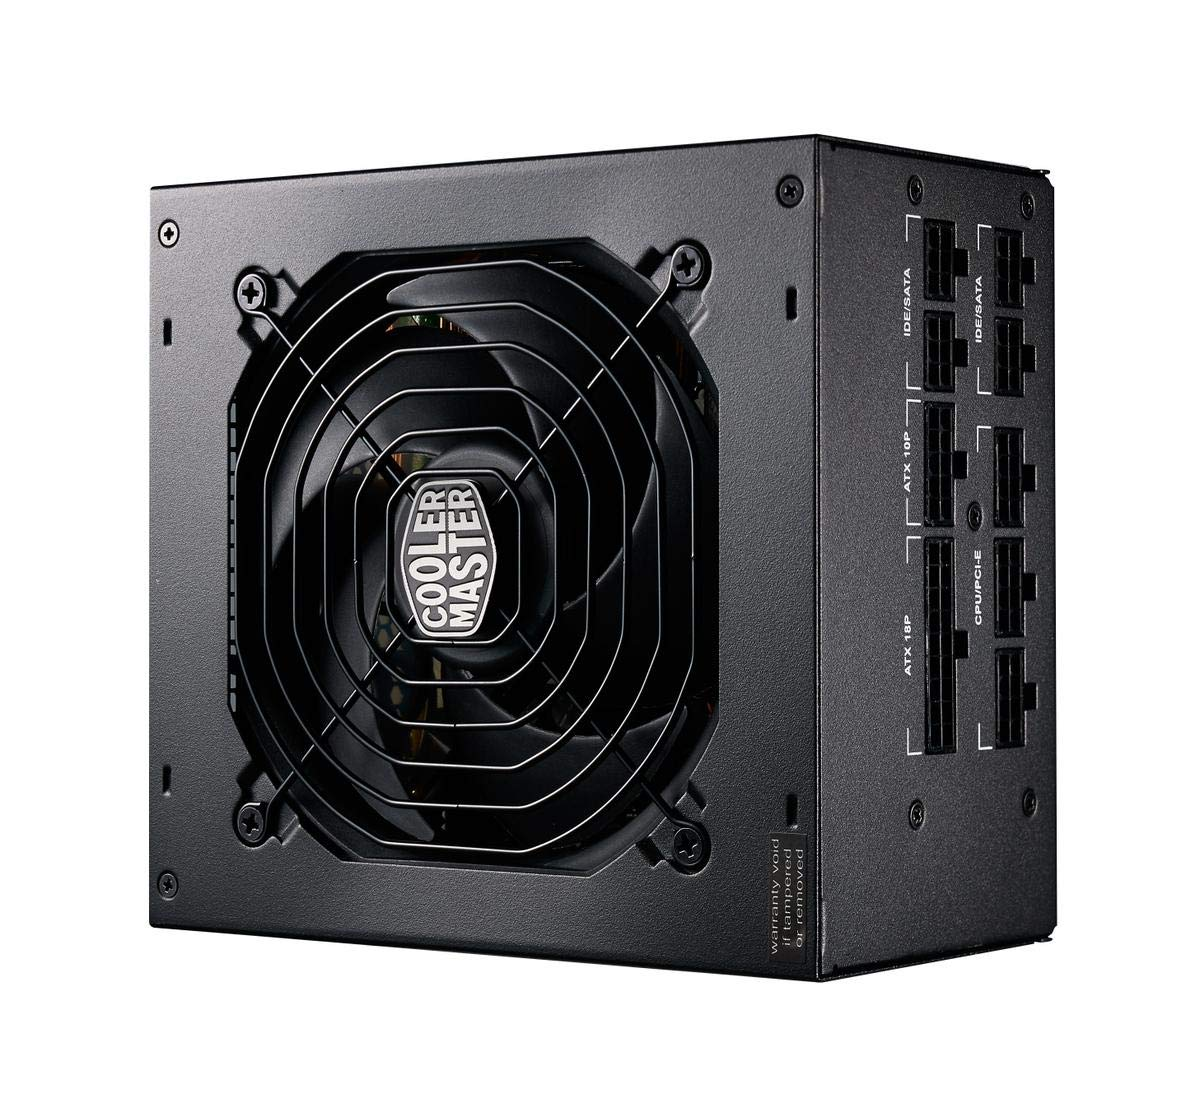 Cooler Master MPY-6501-AFAAG-US MWE 650 Gold Full Modular, 80+ Gold Certified 650W Power Supply, 5 Year Warranty by Cooler Master (Image #8)